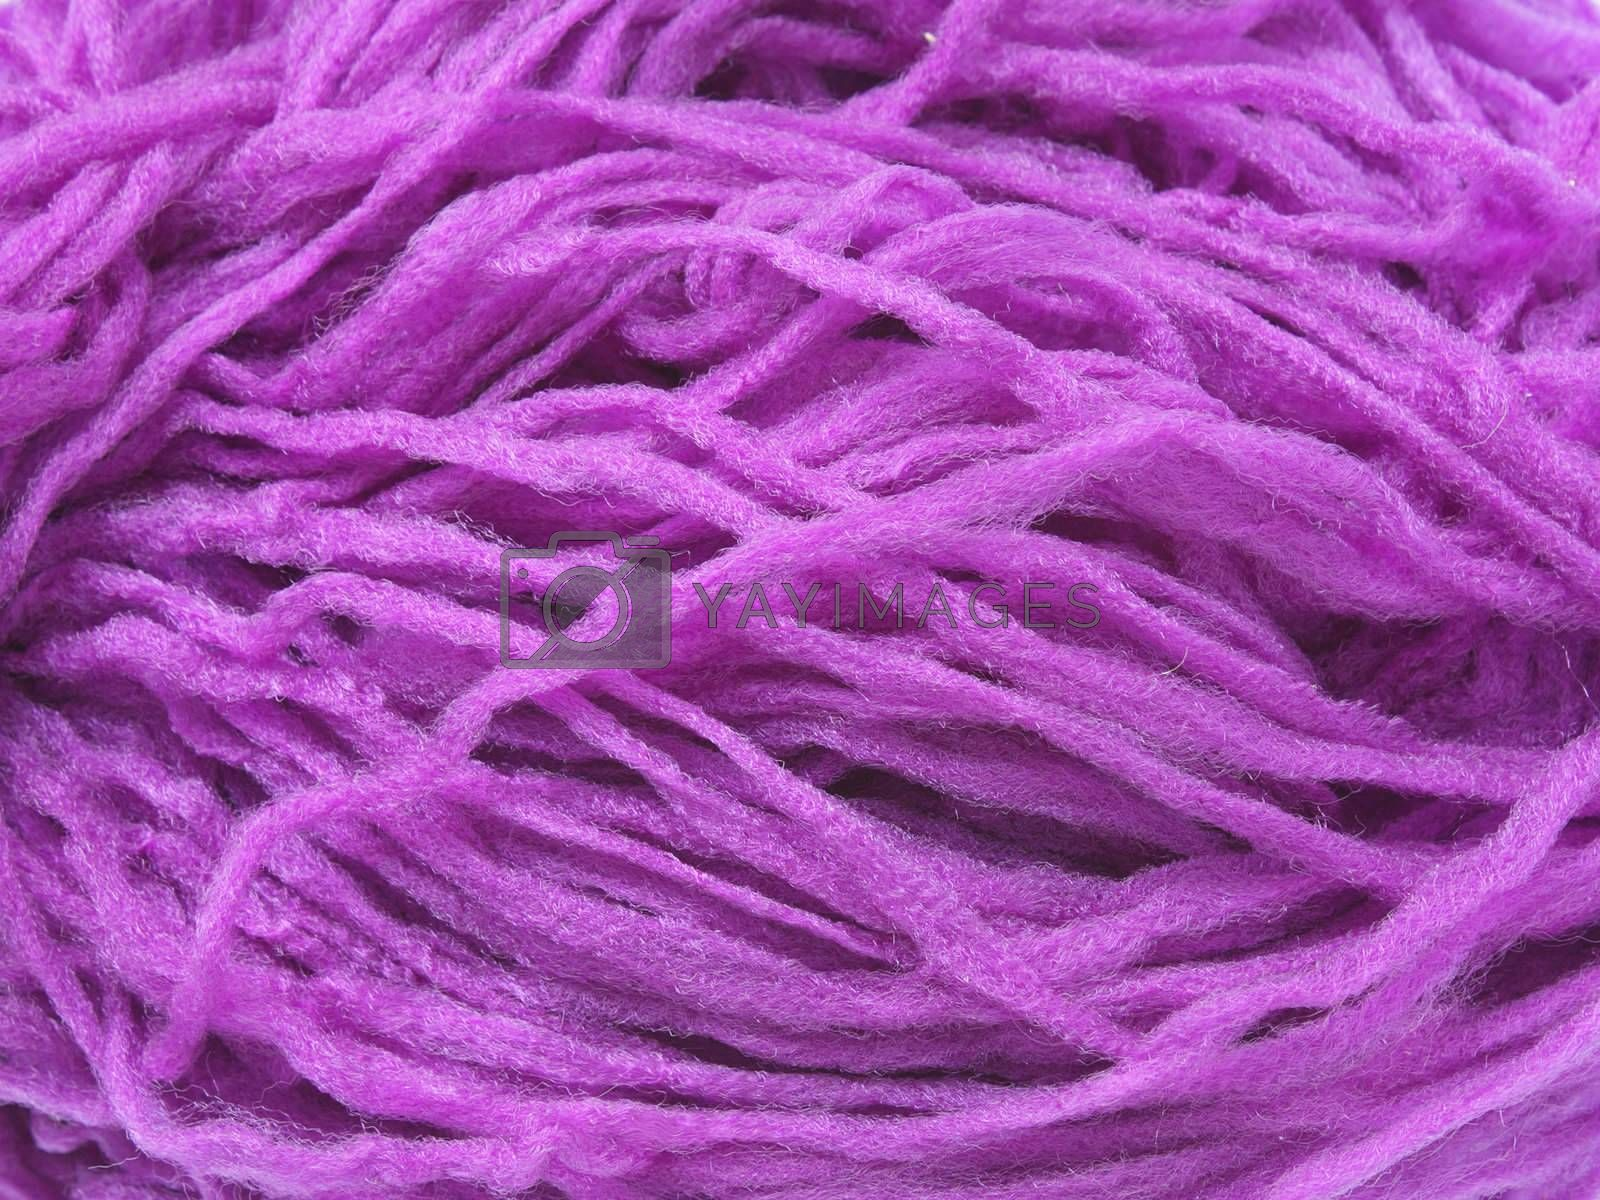 Royalty free image of Violet synthetic yarn by pulen